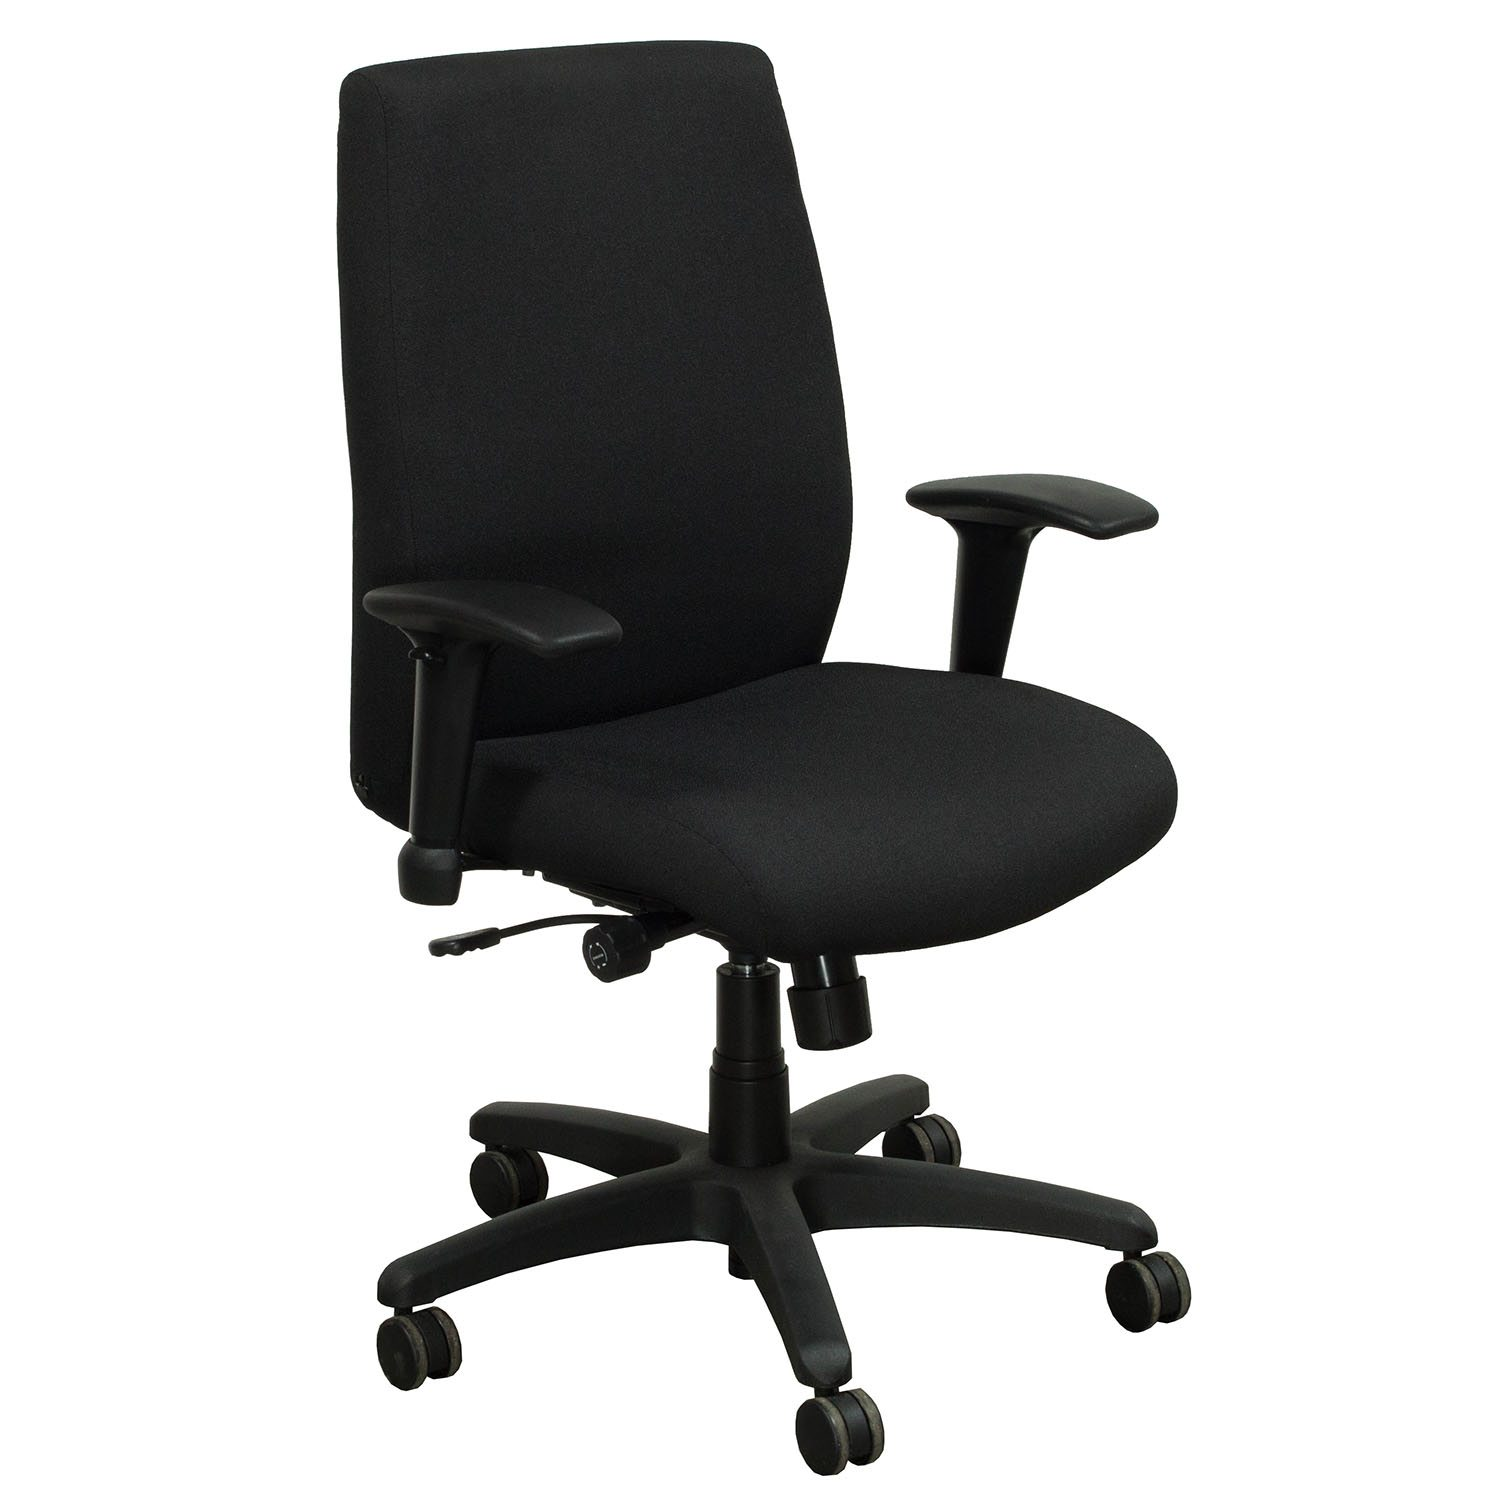 resistance chair accessories outdoor covers canadian tire allsteel ambition used task chair, black | national office interiors and liquidators